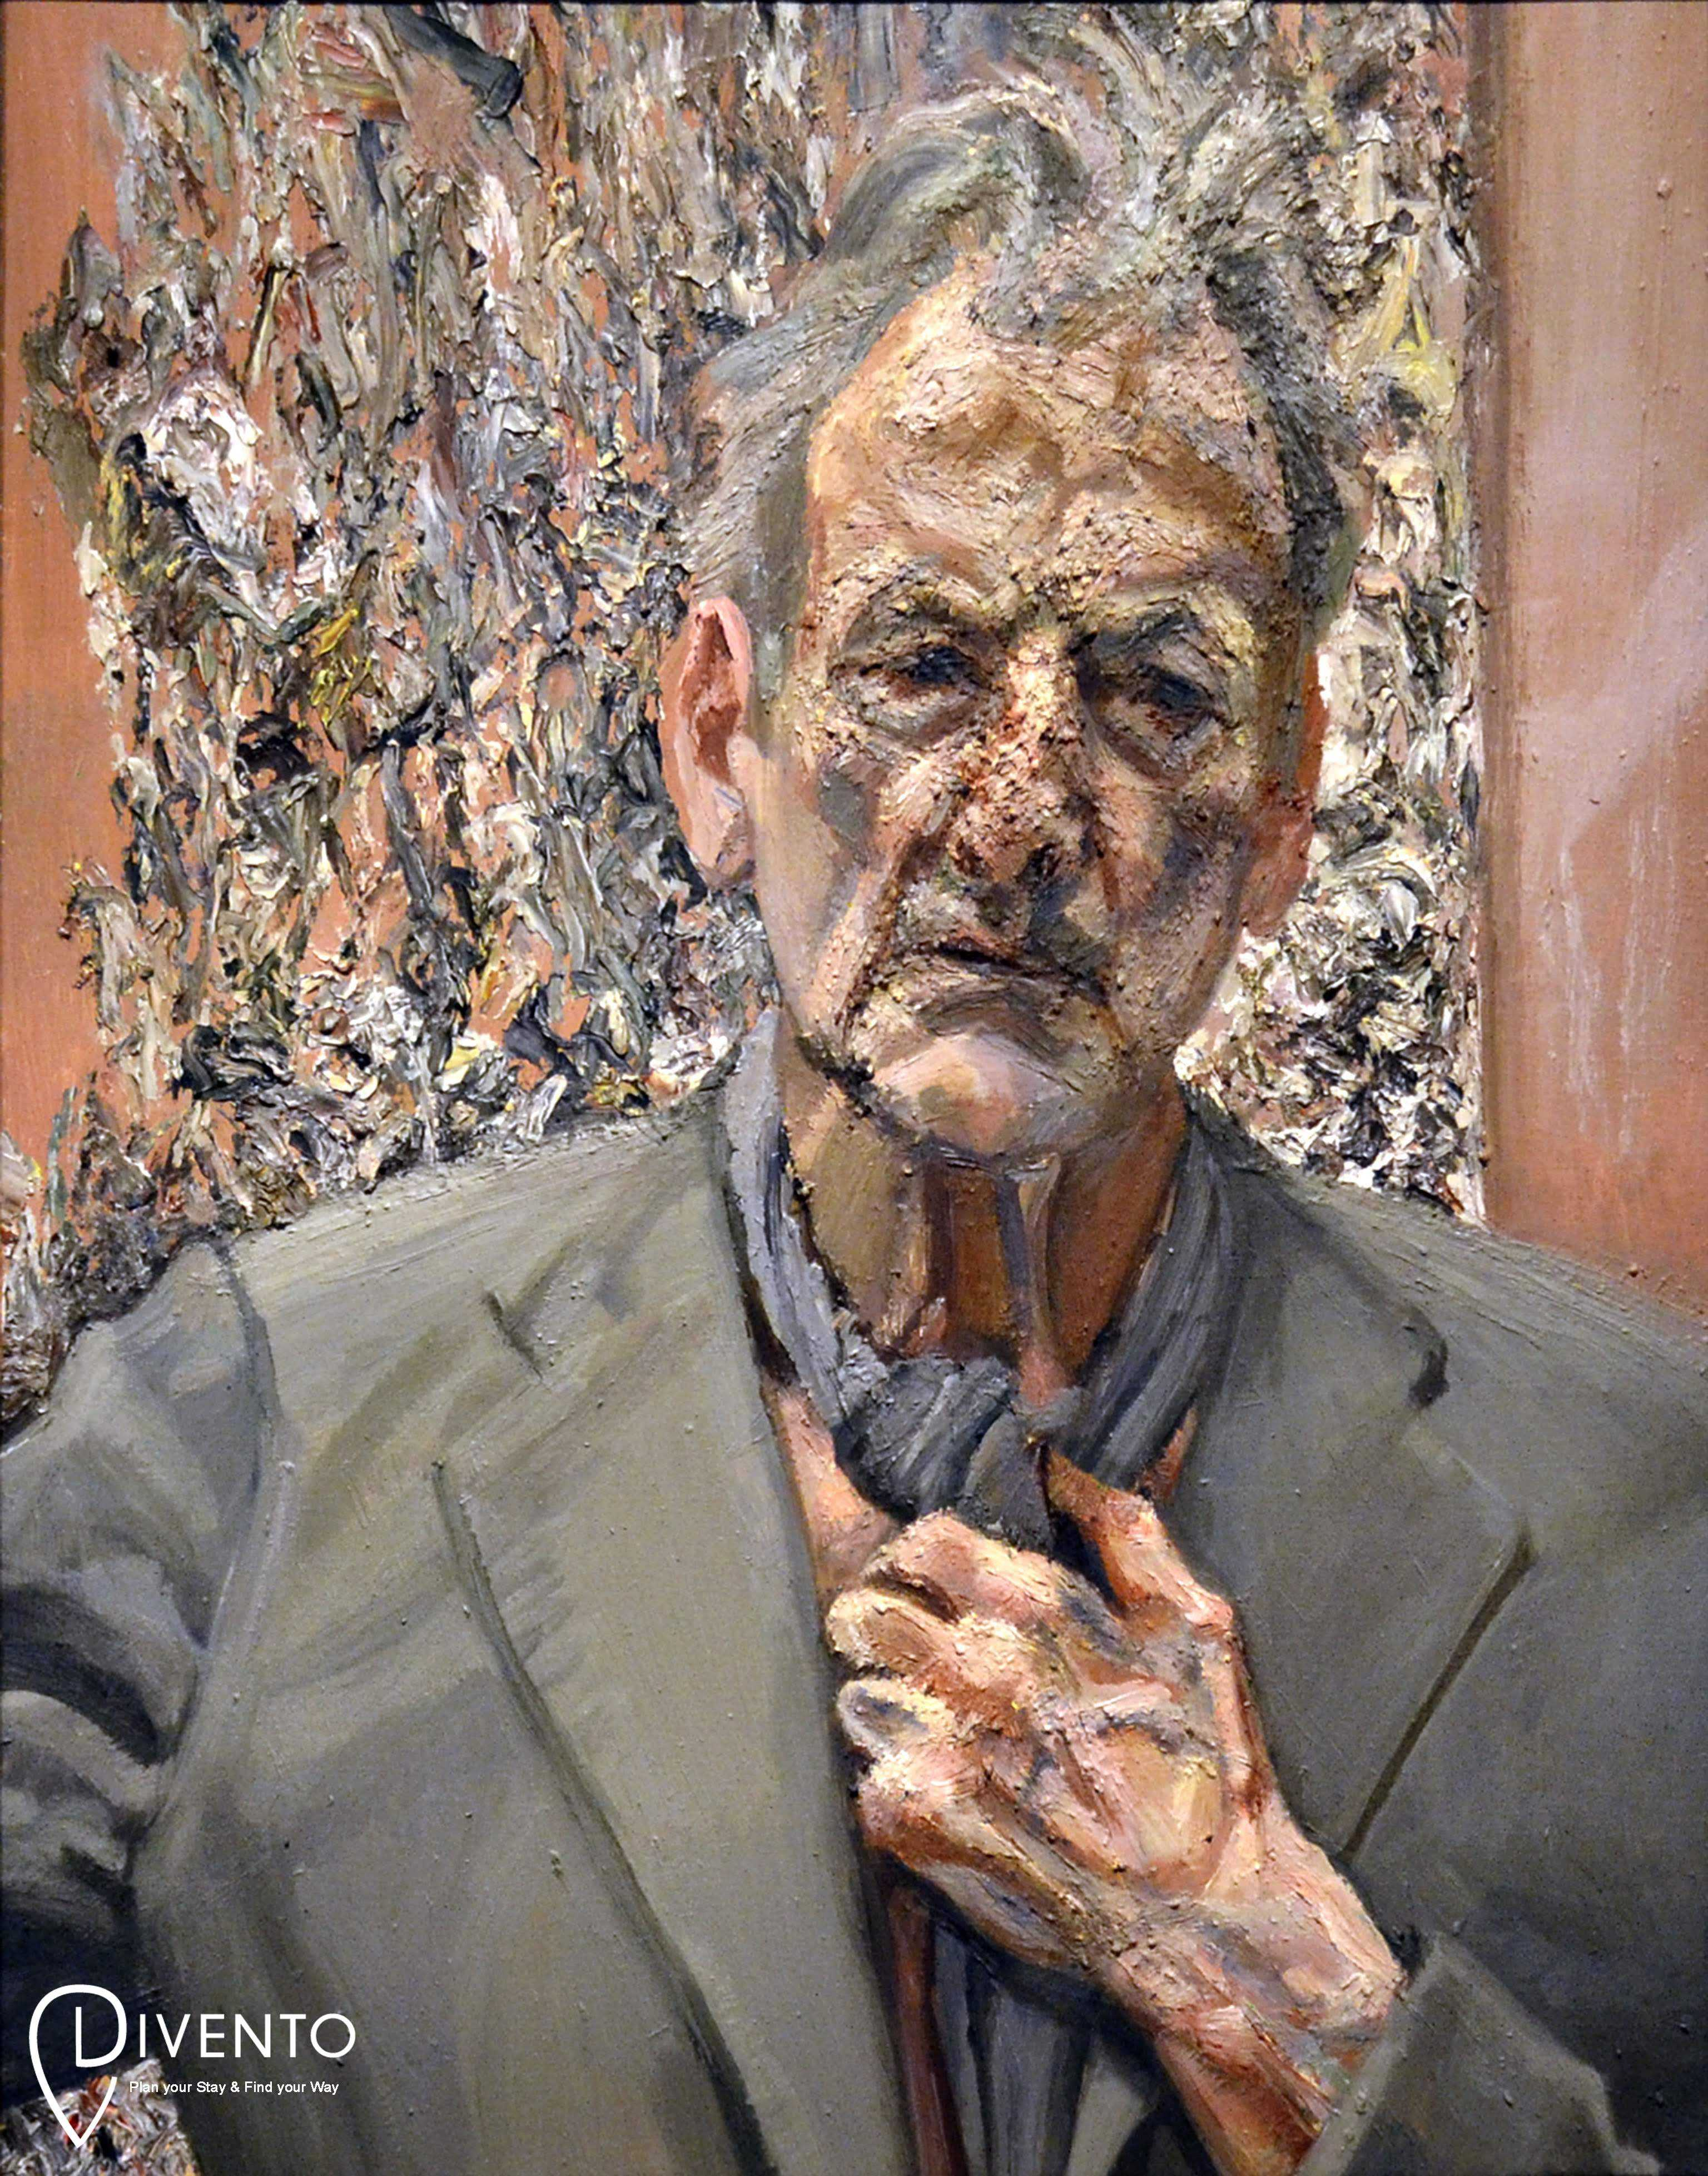 Lucian Freud: The Self-portraits, Exhibition, Royal Academy, London: 27 October 2019–26 January 2020